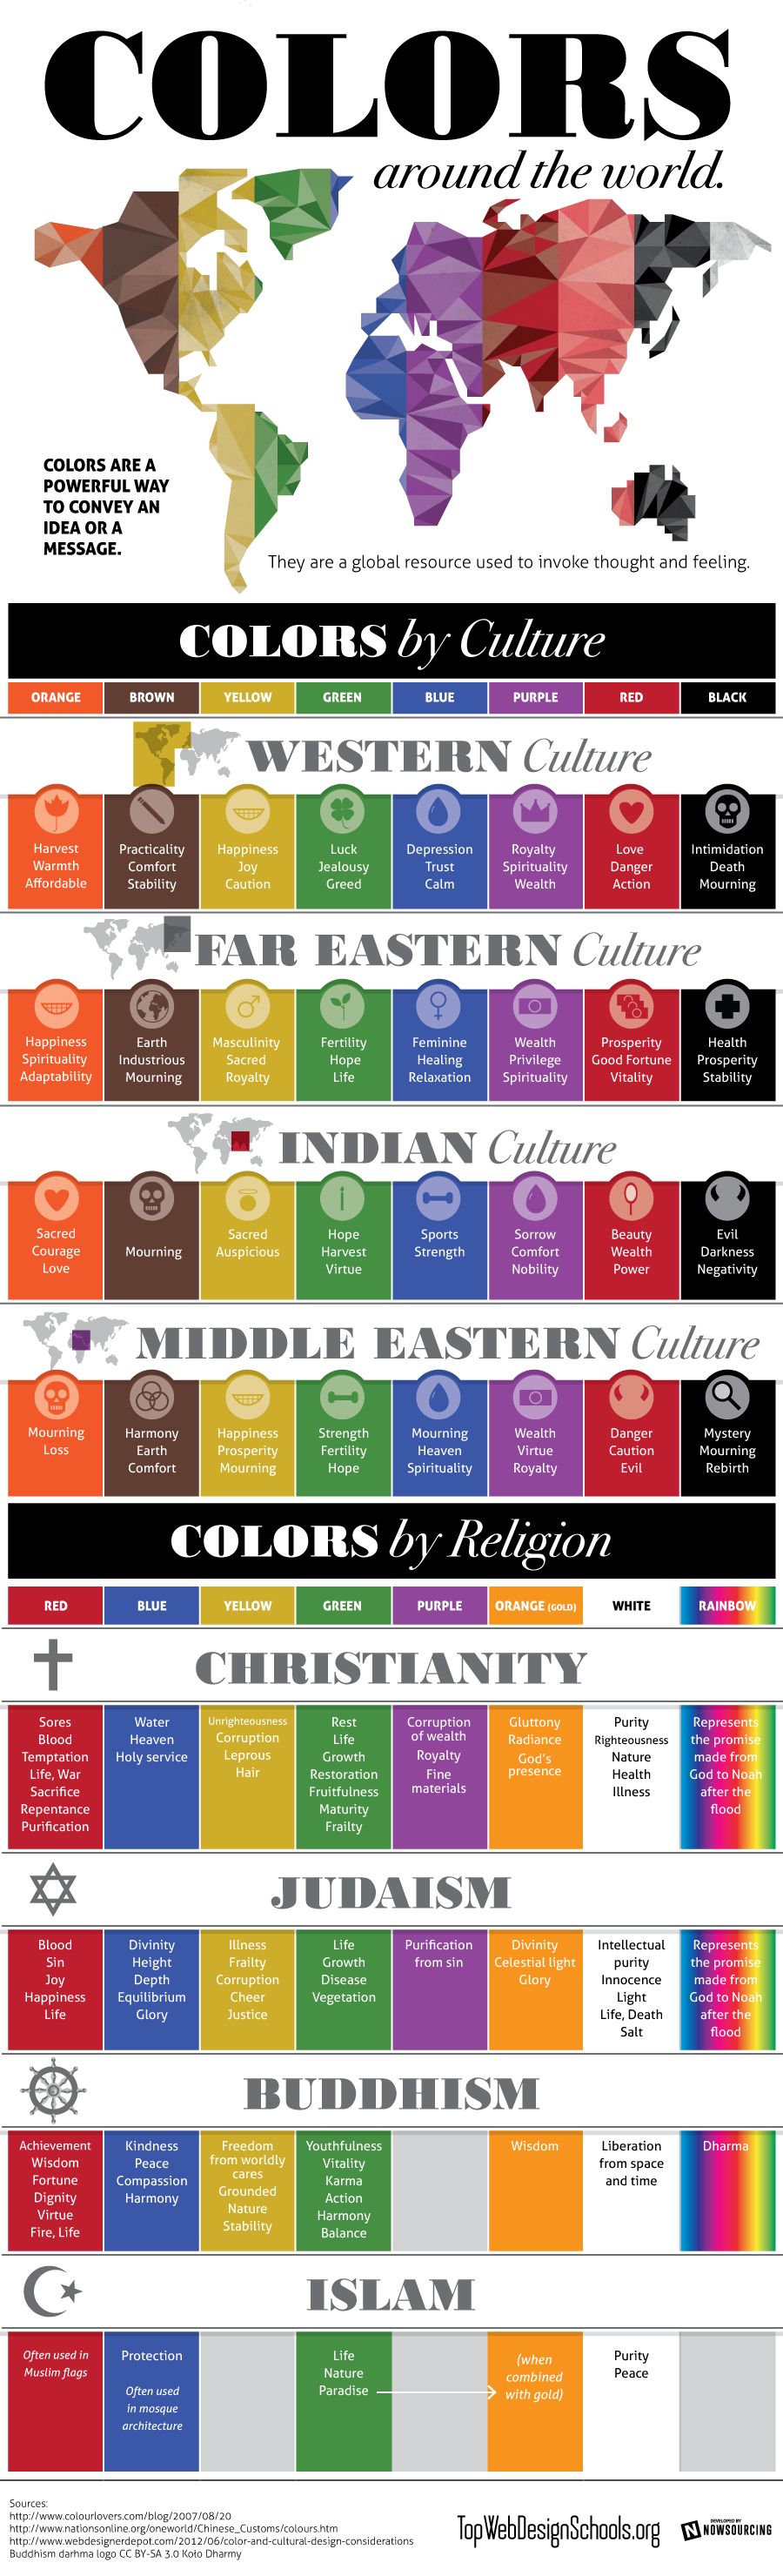 Infographic: Colors Around The World By Culture